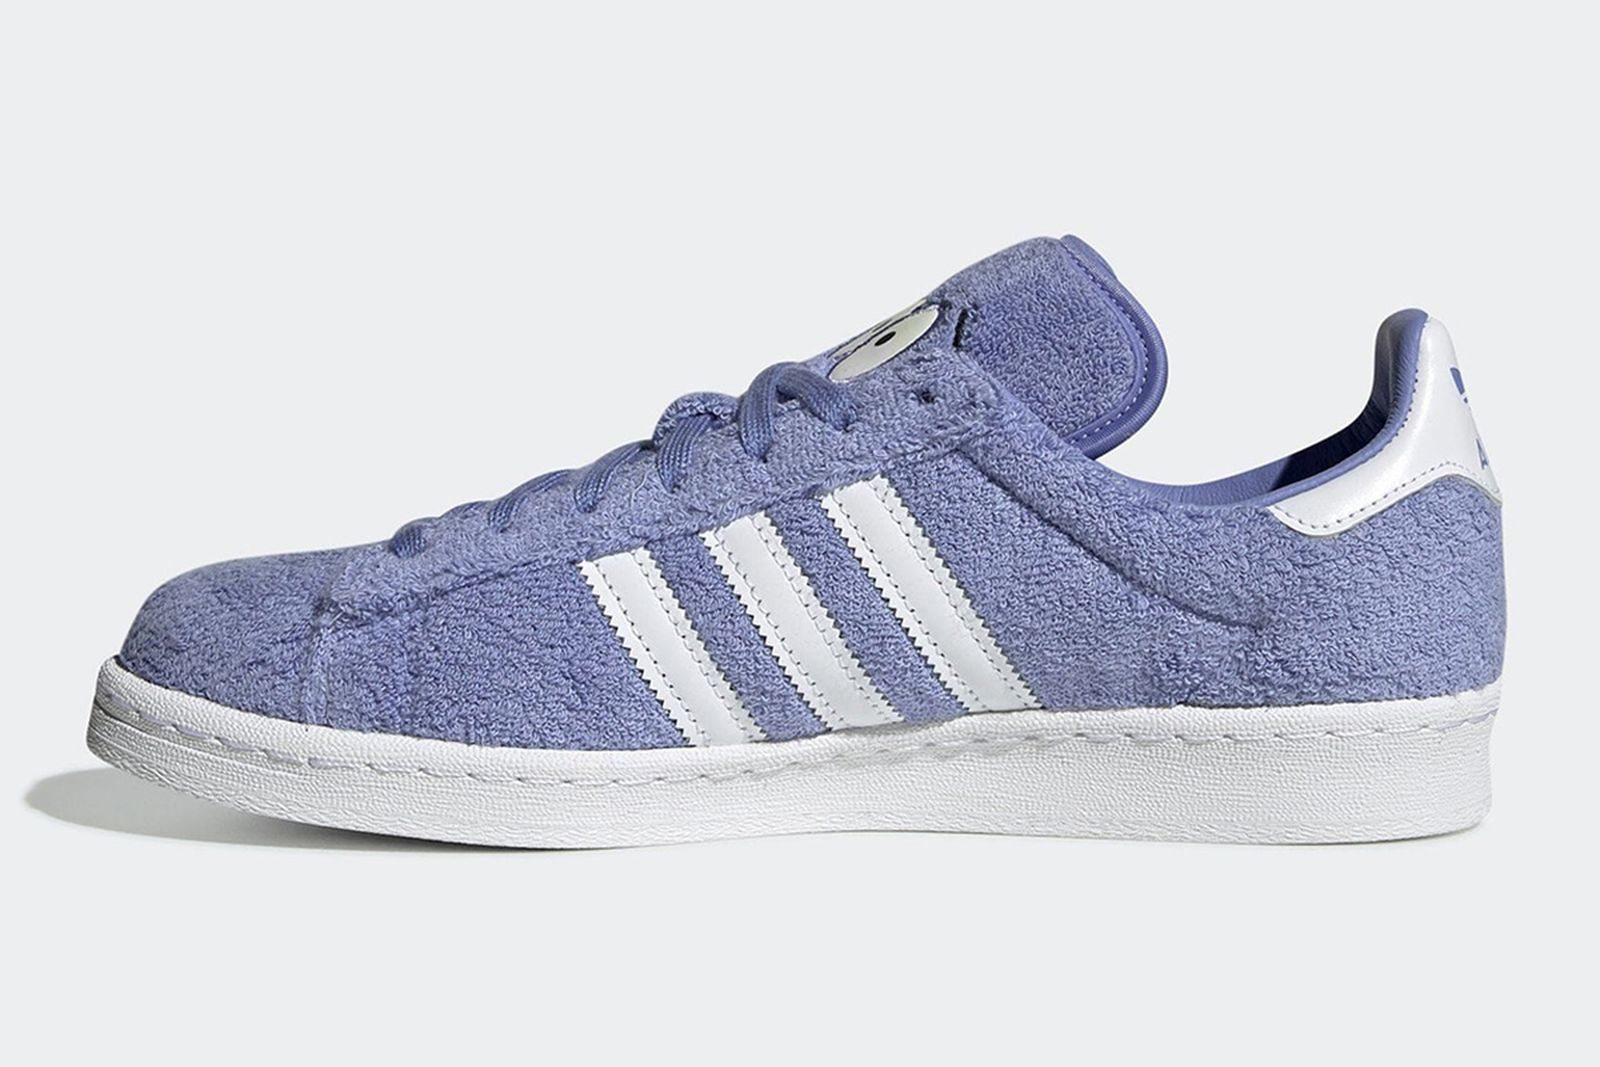 south-park-adidas-campus-80-towelie-release-date-price-03